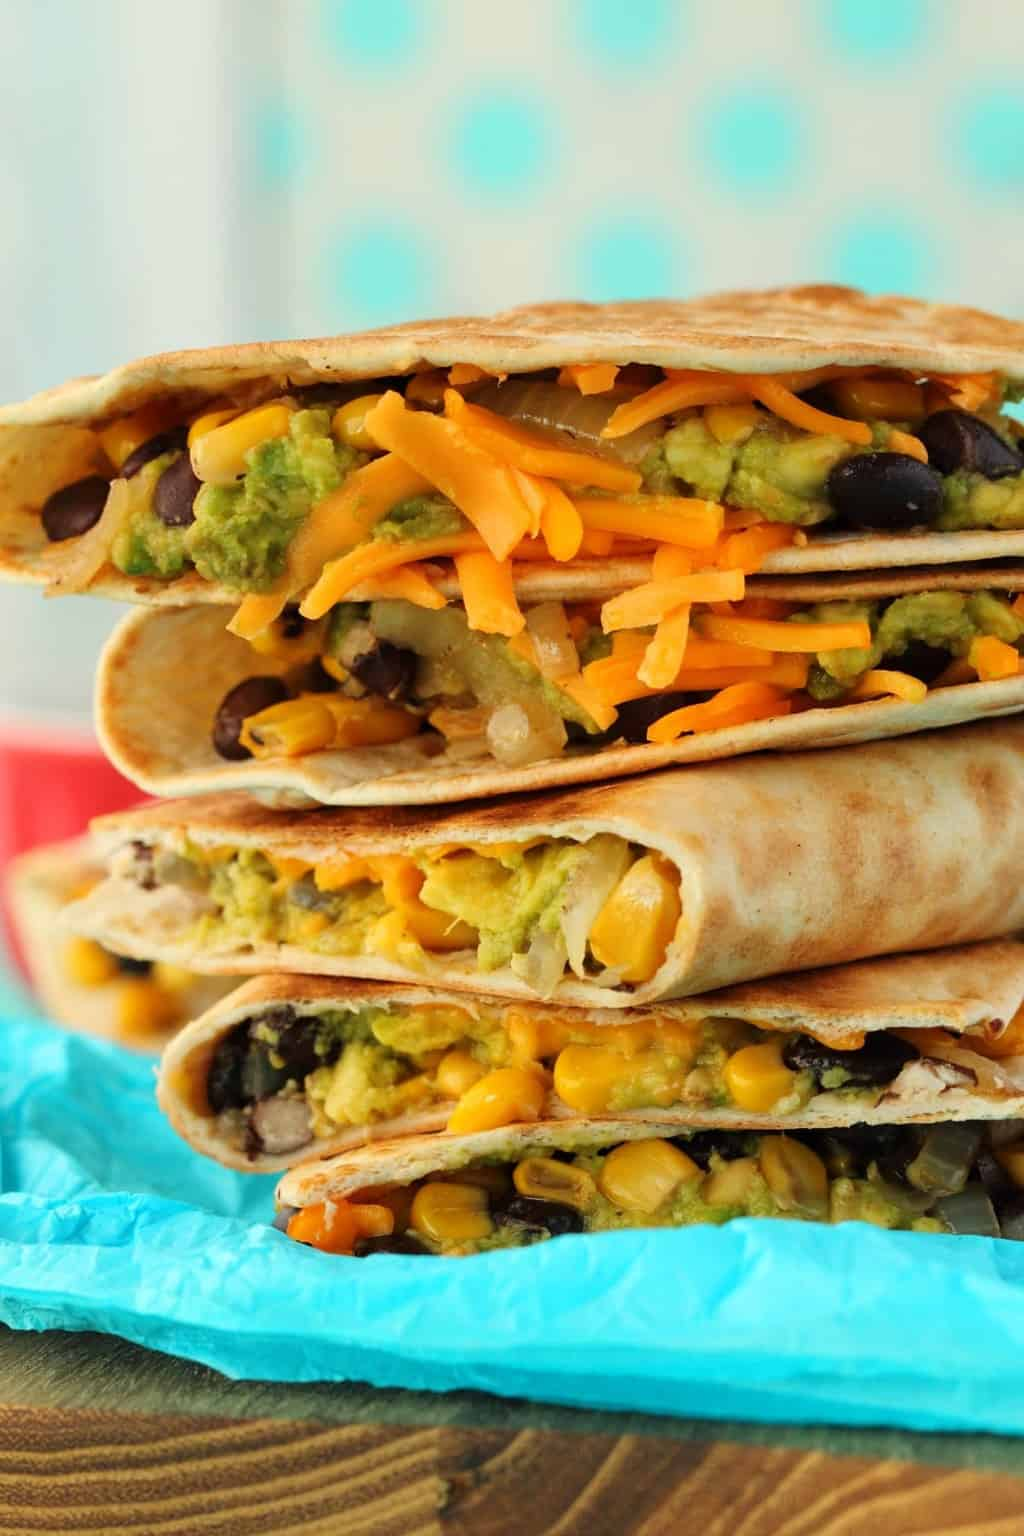 Vegan Quesadillas in a stack on blue paper.